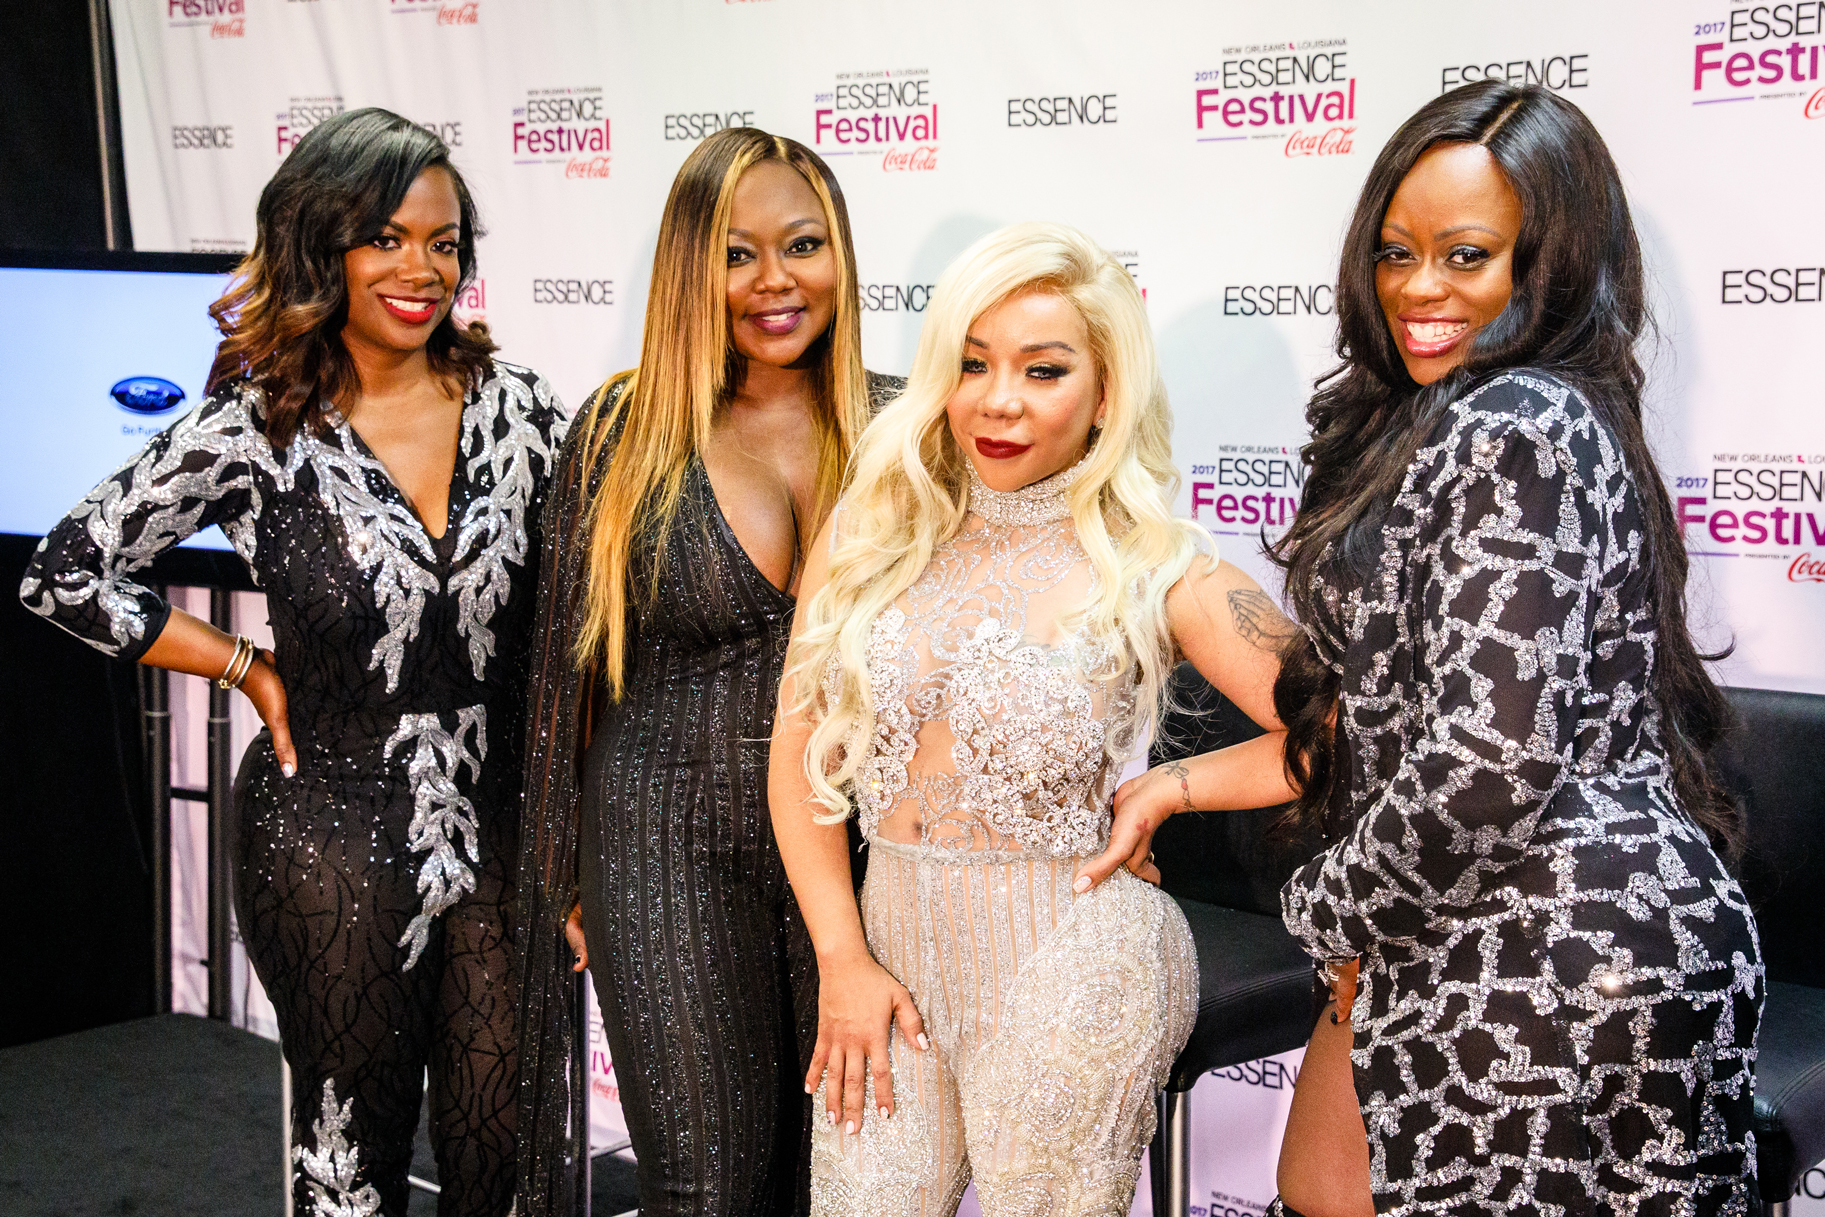 Xscape Receives The Key To The City And Their Very Own Day - Tiny Harris Could Not Be Prouder